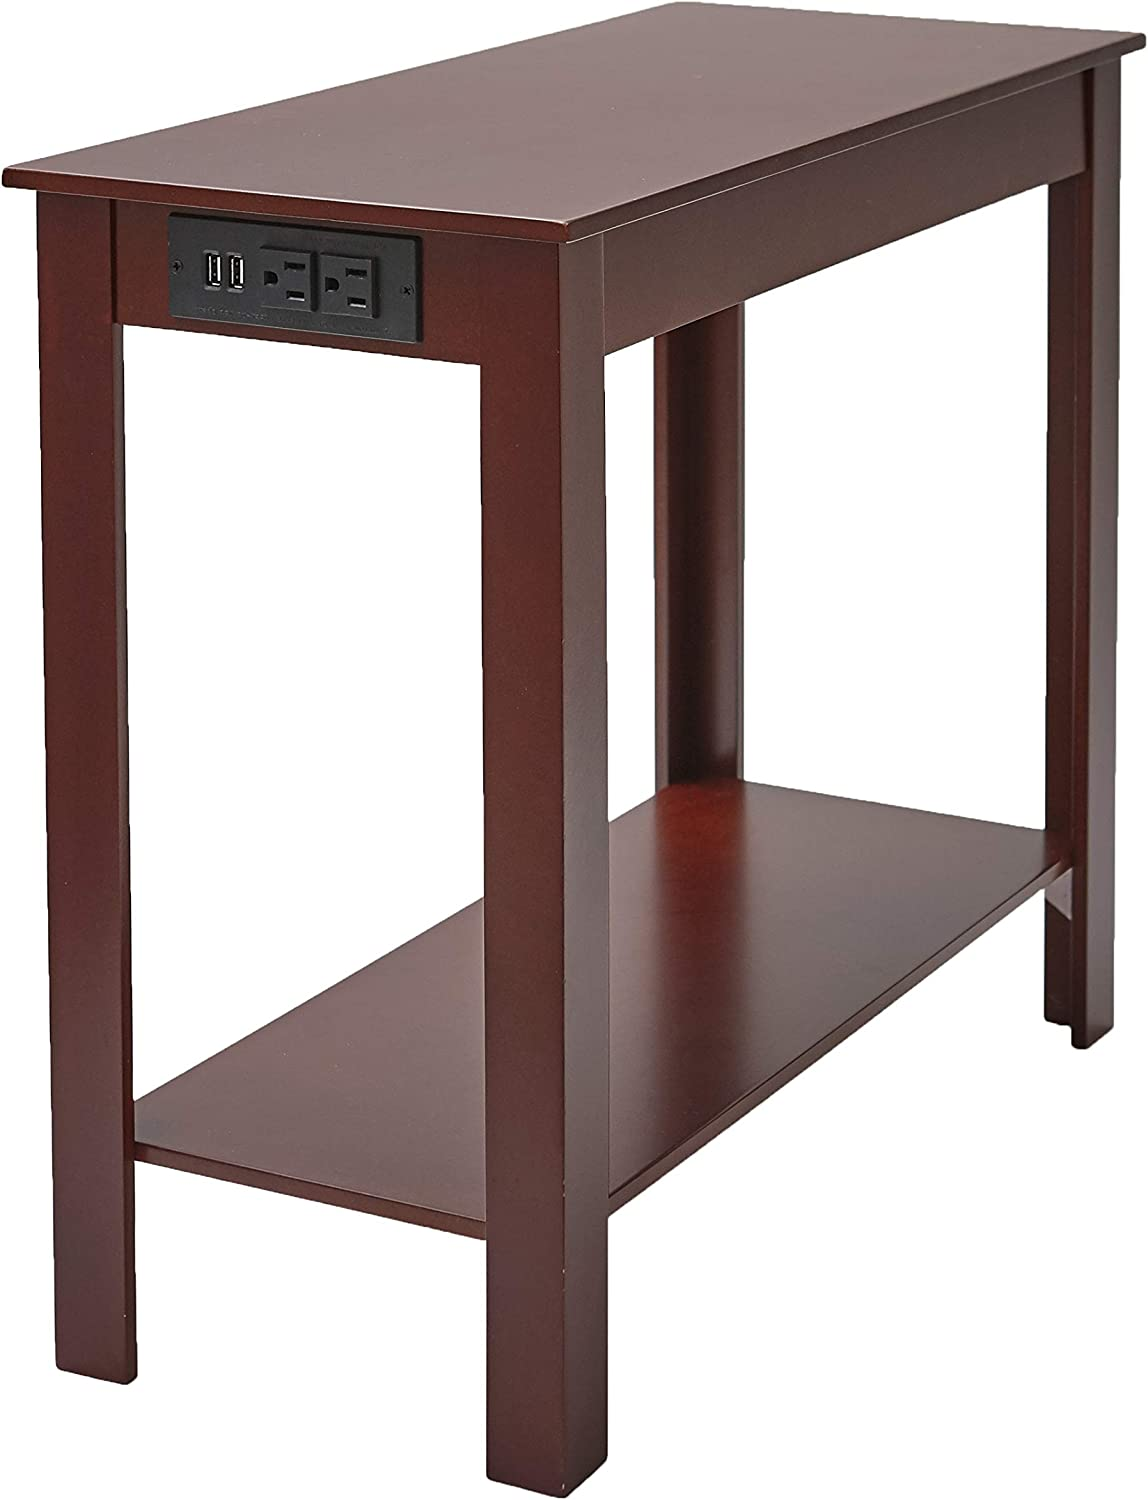 Side Table with Popular popular Power 55% OFF Station - End Office Outlets